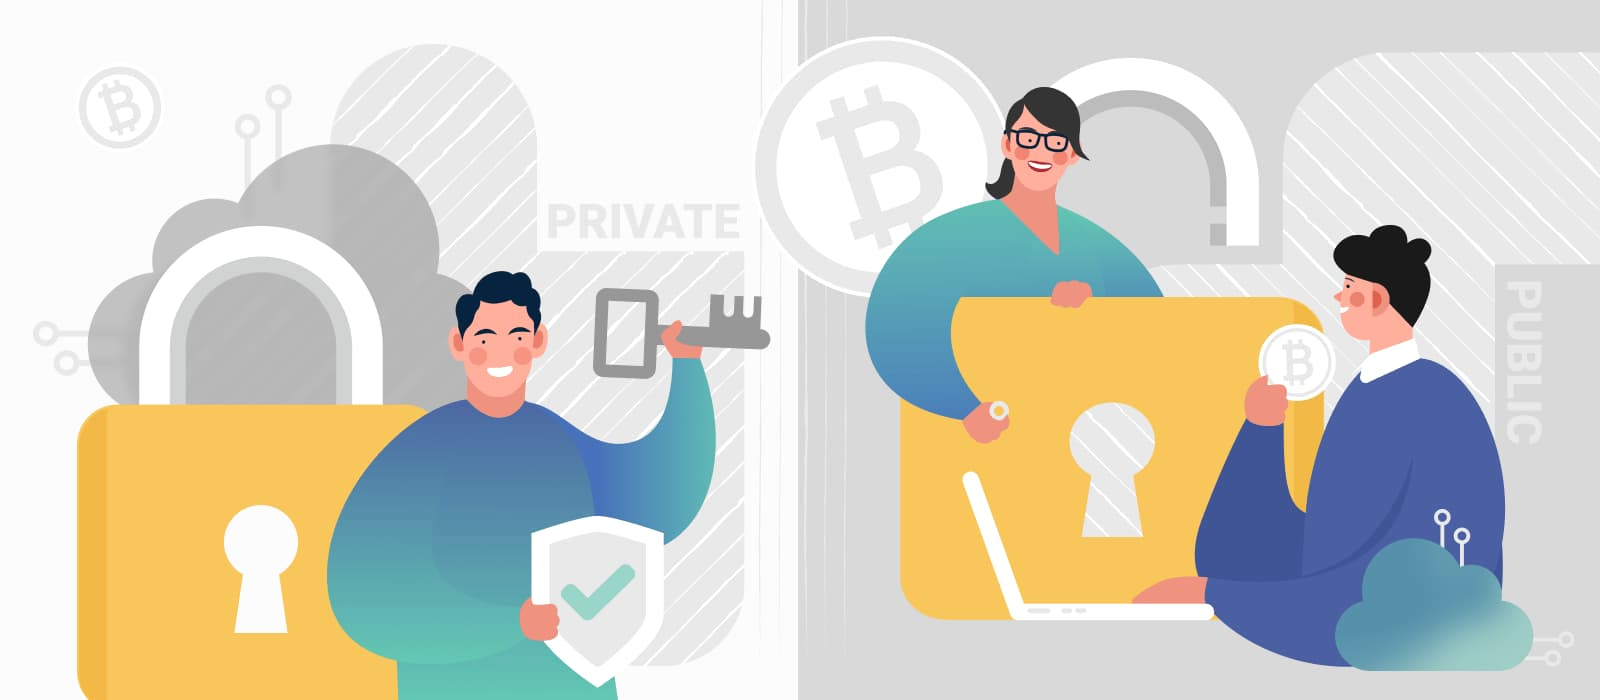 Public vs. Private Blockchain: How Different Are They?